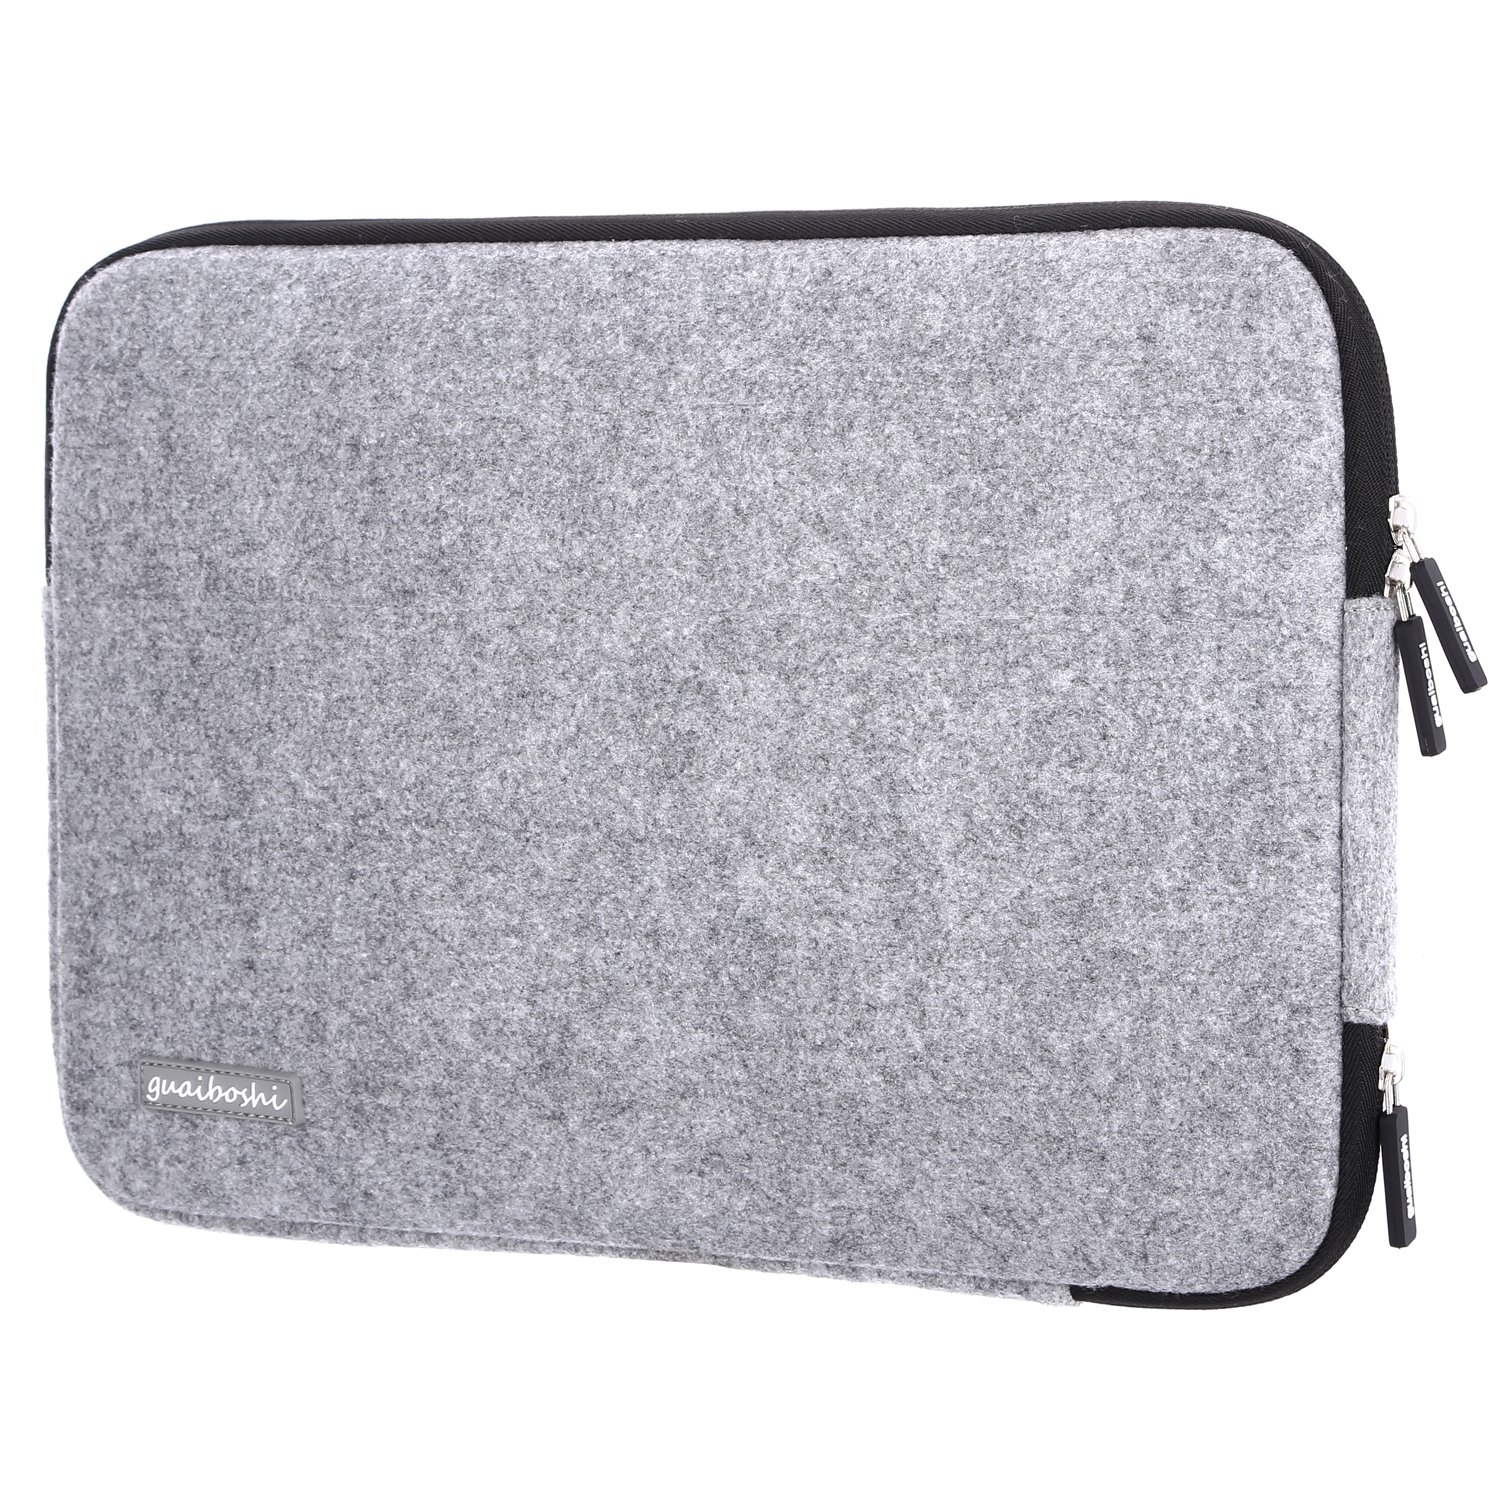 Guaiboshi Drop-proof Laptop Sleeve for 13 - 13.3 Inch MacBook Air | MacBook Pro Retina Late 2012 - Early 2016 | 12.9 Inch iPad Pro, 360° Protective Chromebook Tablet Case, Spill-Resistant, Gray CA-LaptopC-MZ01GY